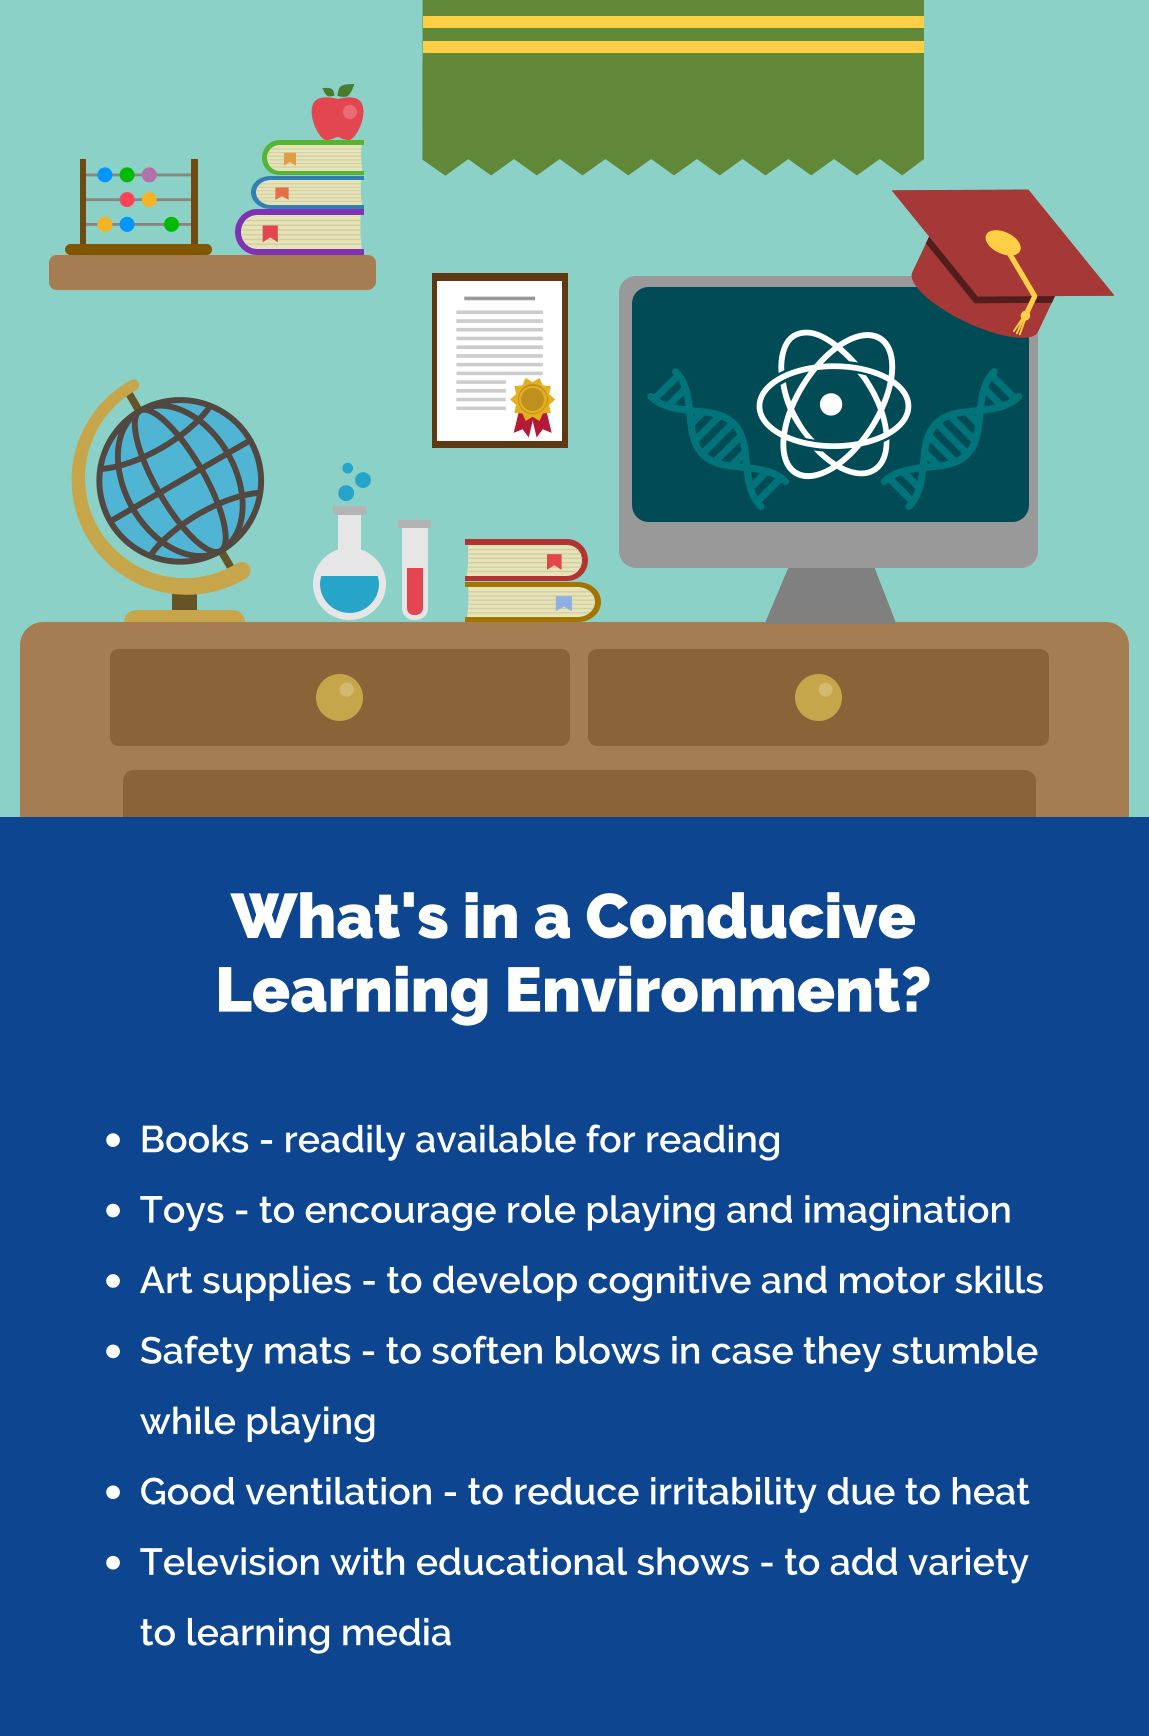 What's in a Conducive Learning Environment? Learning